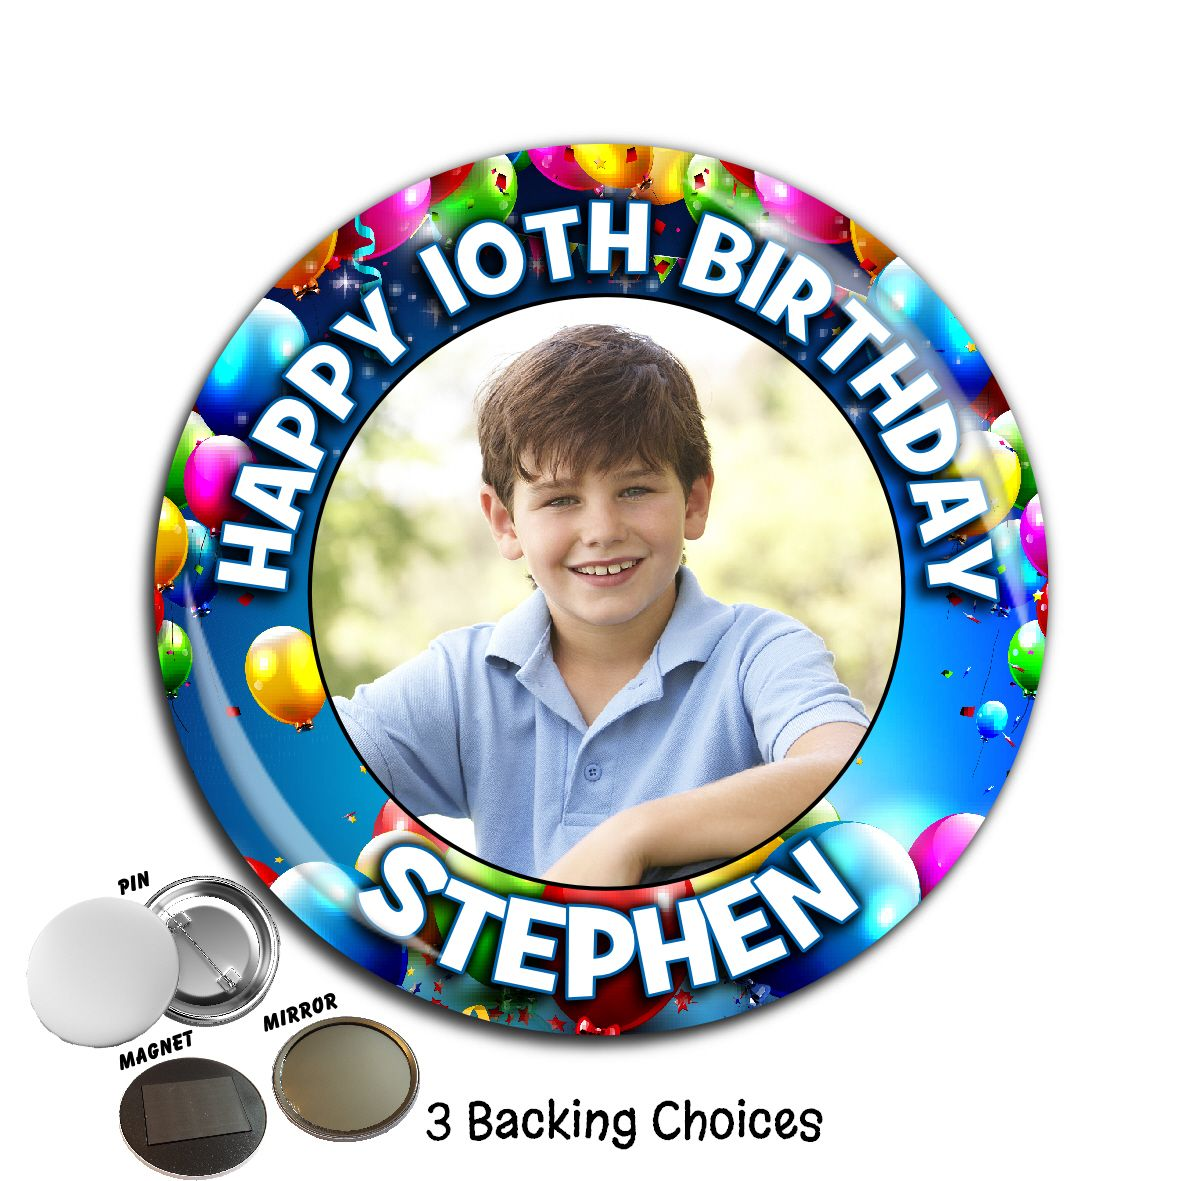 Girl Happy 7th Birthday Age Party Balloons Banners Big Badges 7 Today